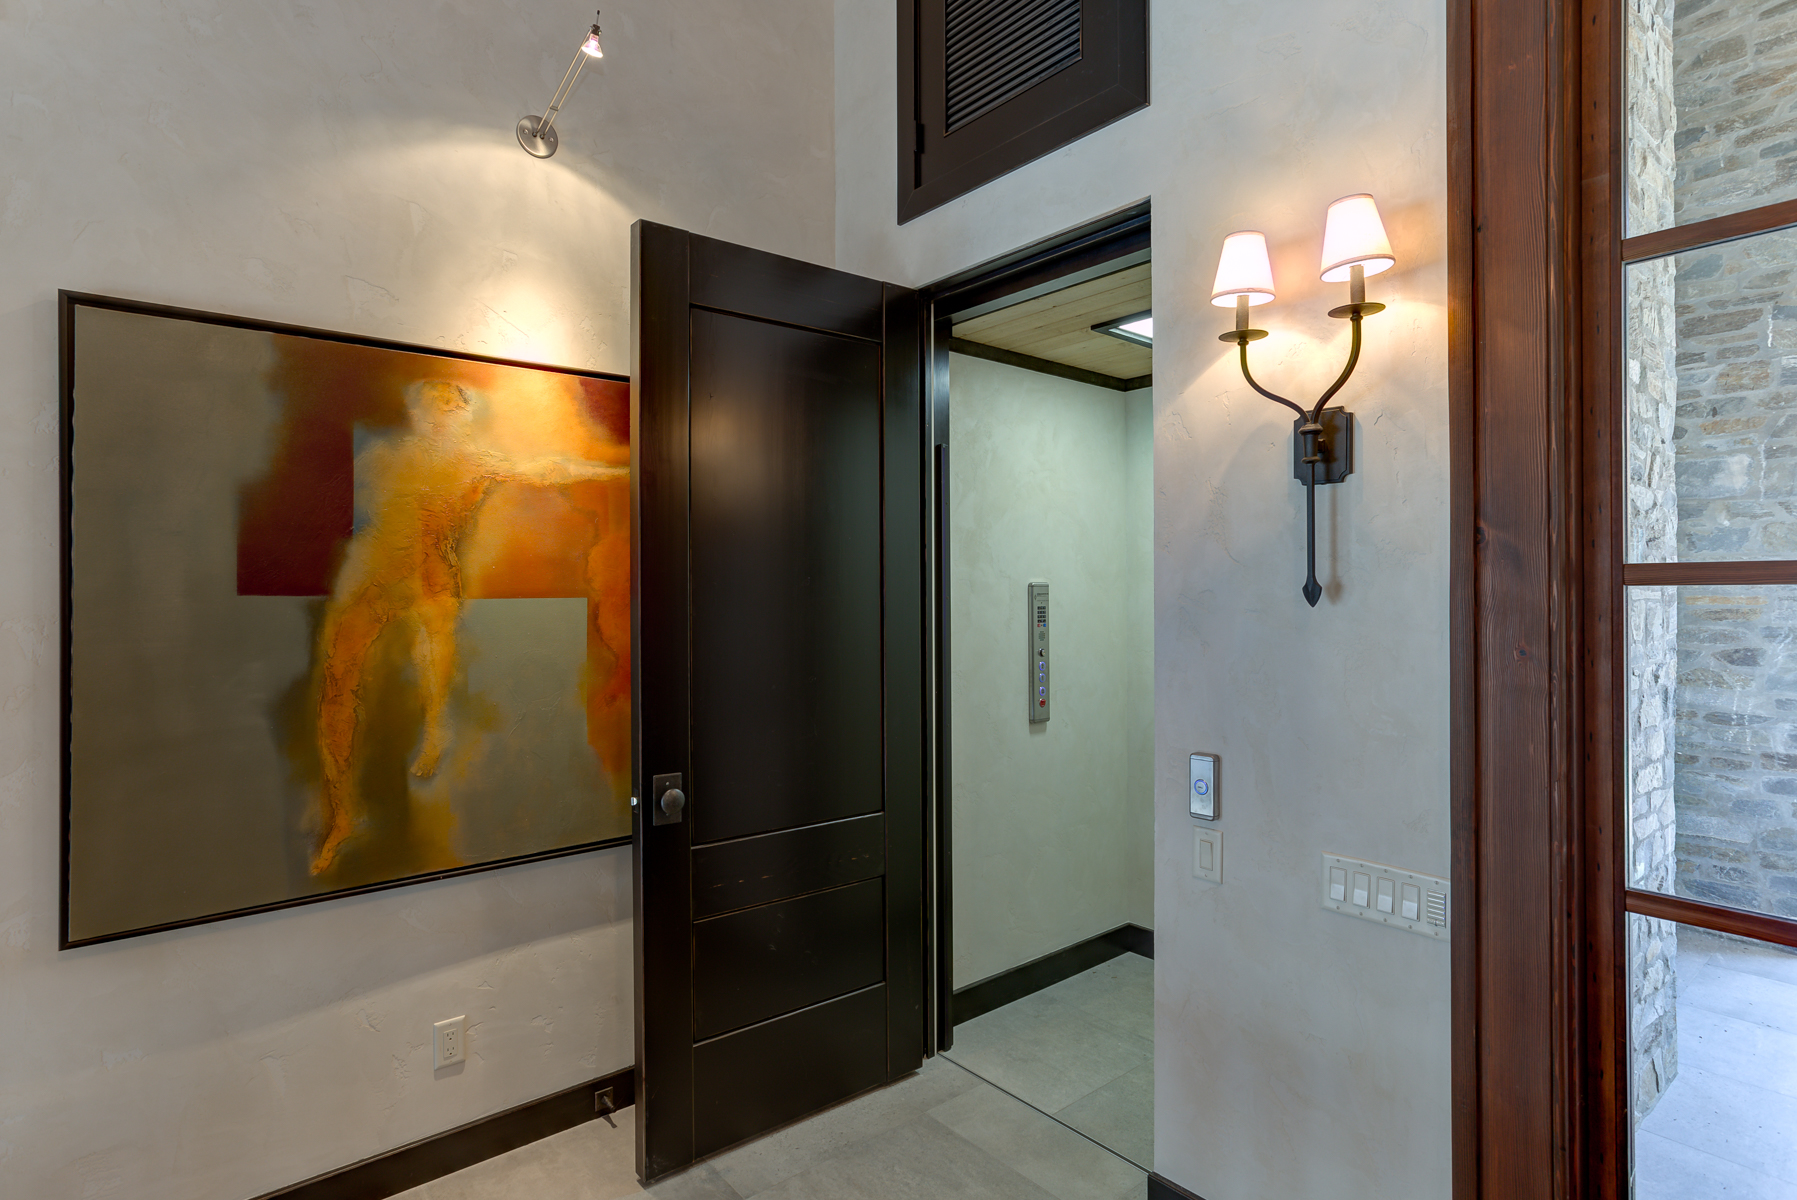 Luxury home elevators best in design function for Luxury home elevators